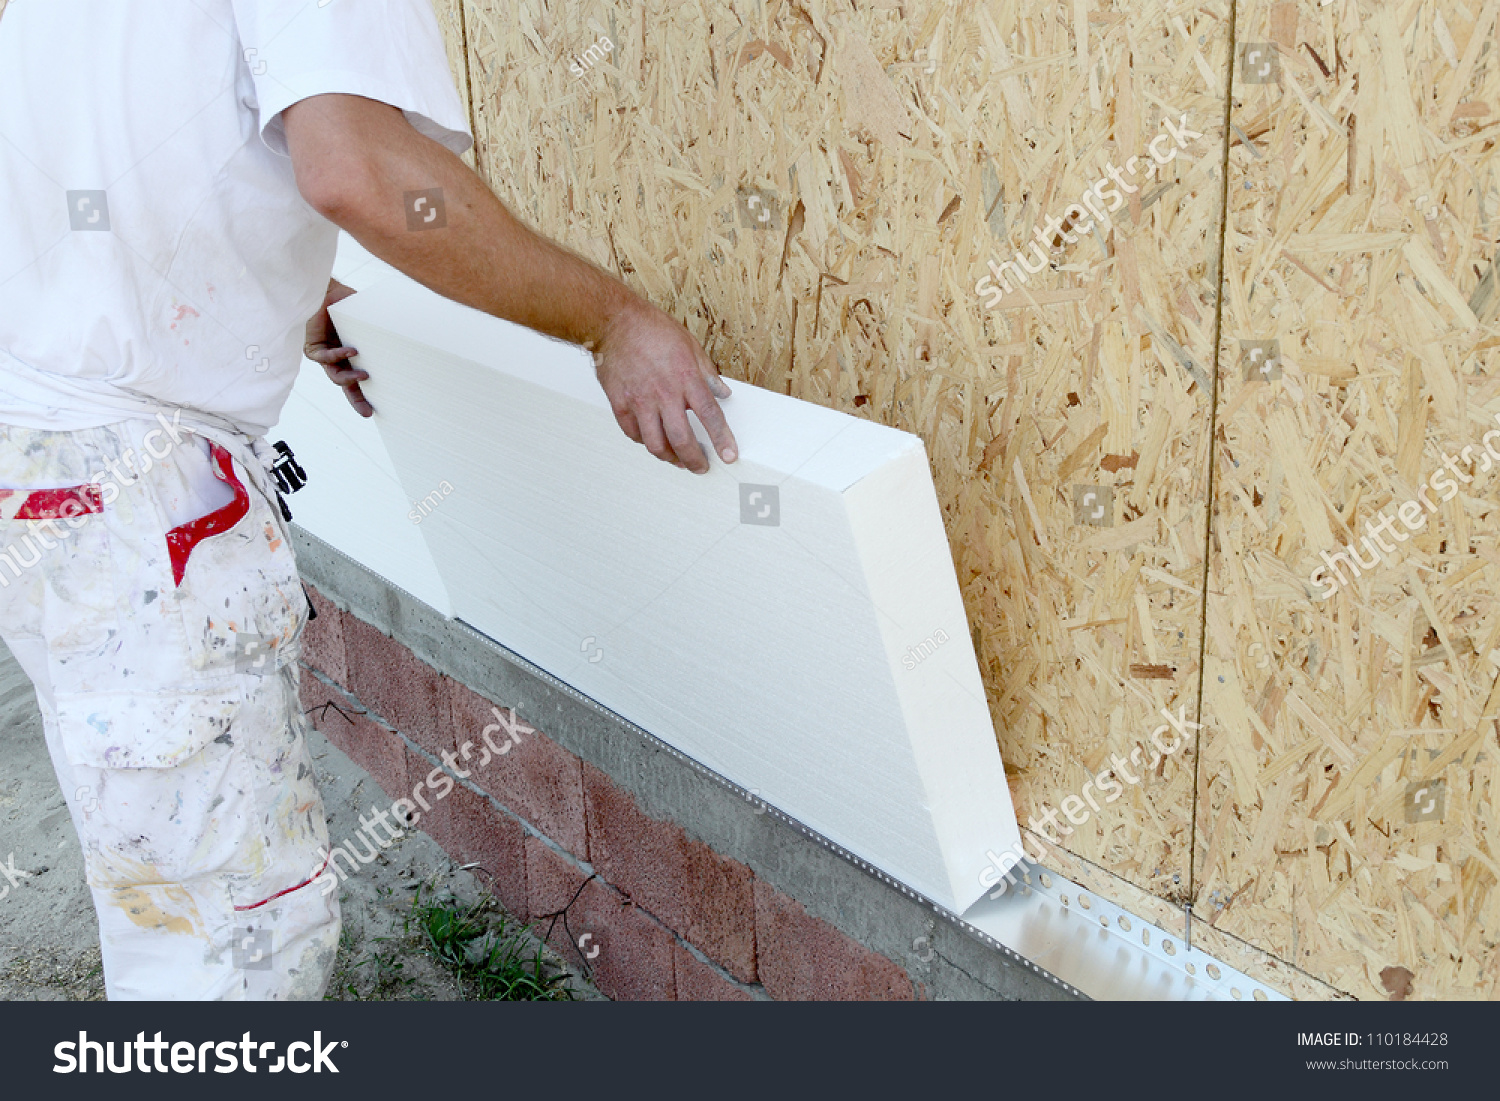 stock-photo-worker-placing-styrofoam-sheet-insulation-to-the-wall-110184428